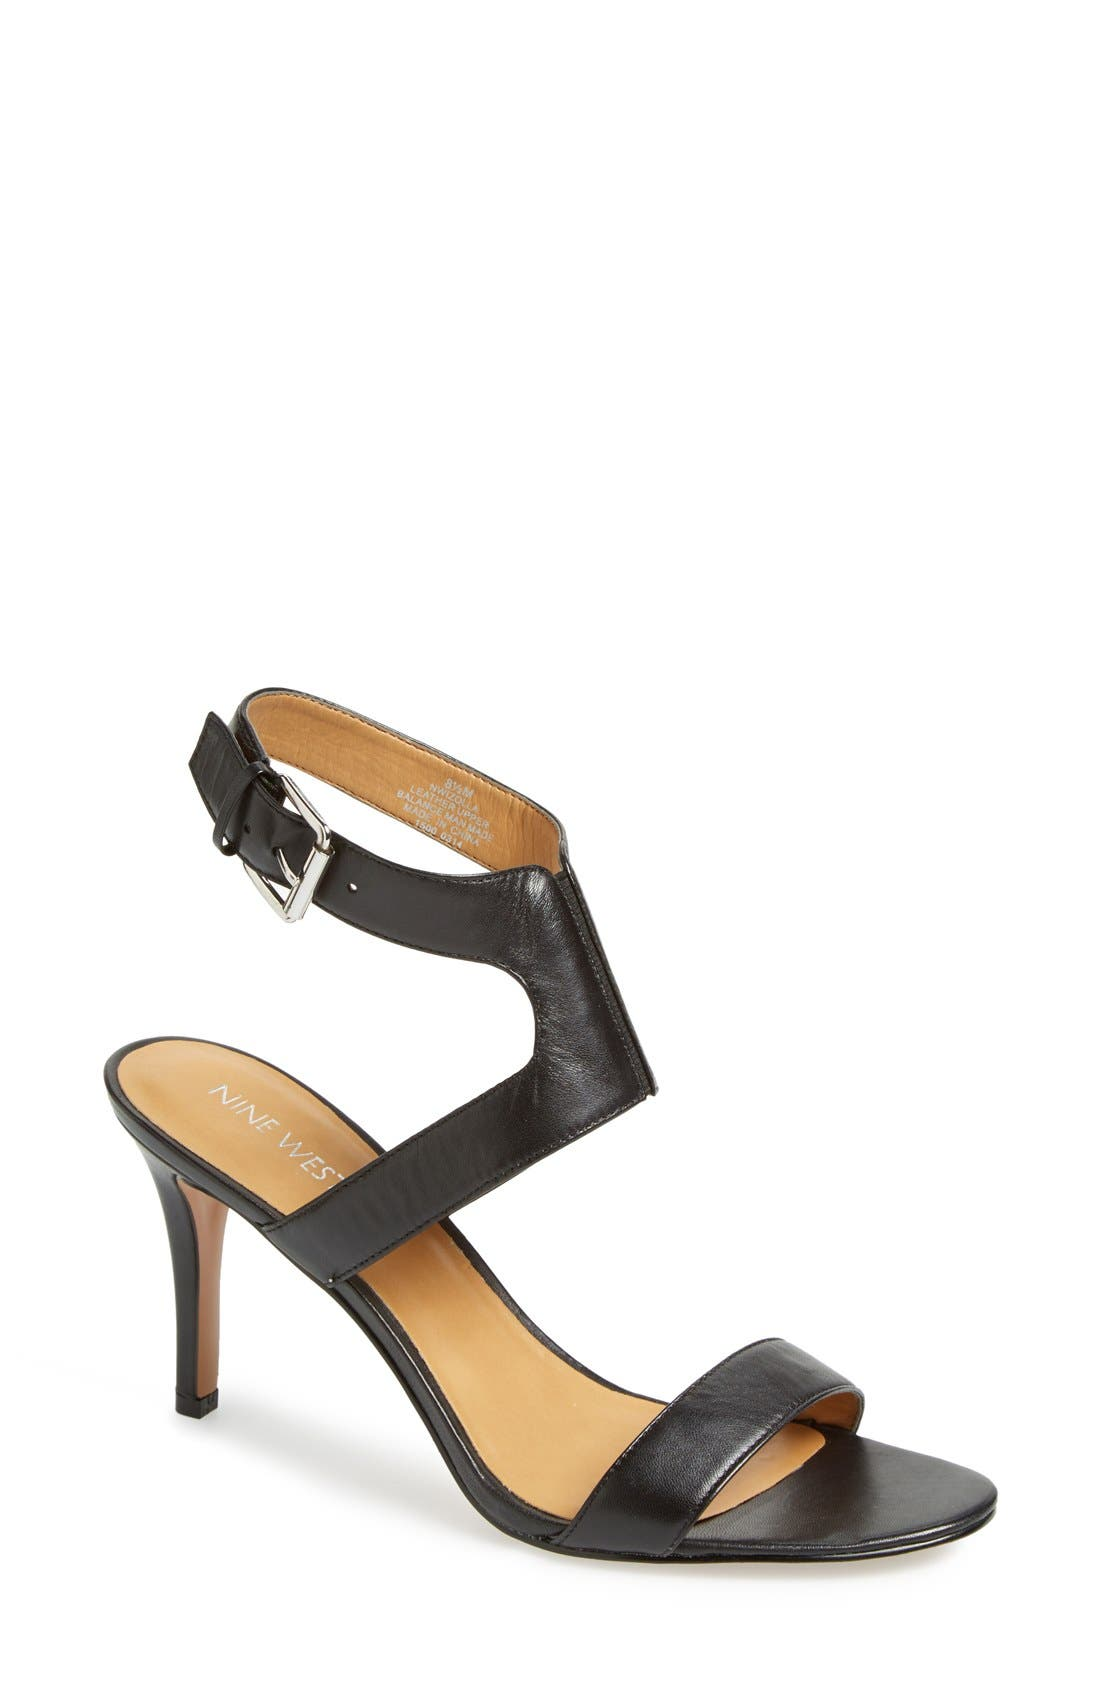 Alternate Image 1 Selected - Nine West 'Izolla' Sandal